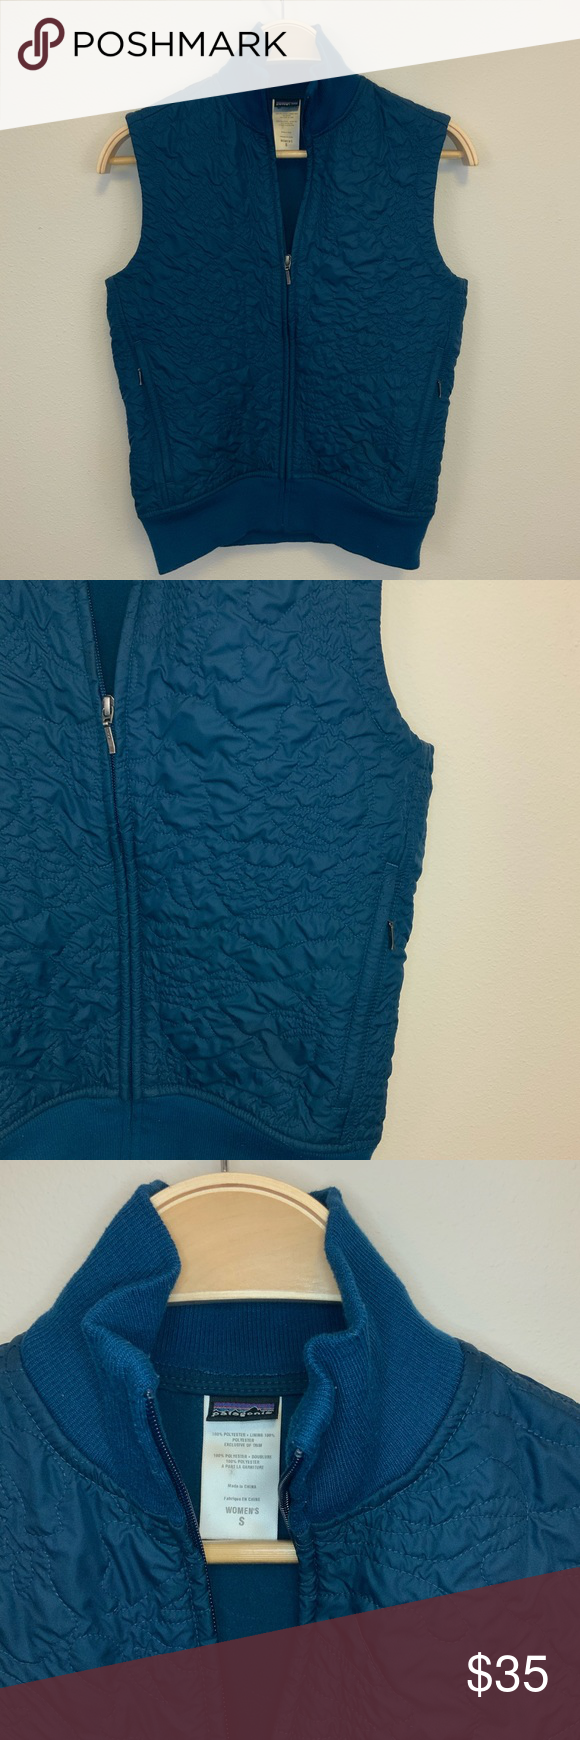 Patagonia Teal Vest Jacket Sz S  Lightweight Patagonia Teal lightweight vest jacket.  Crinkle fabric on the outside and fleece lining.  two side seam pockets with sippers and rib detail at neck and waist.  100% Polyester Size S Approximate Measurements: 17.5